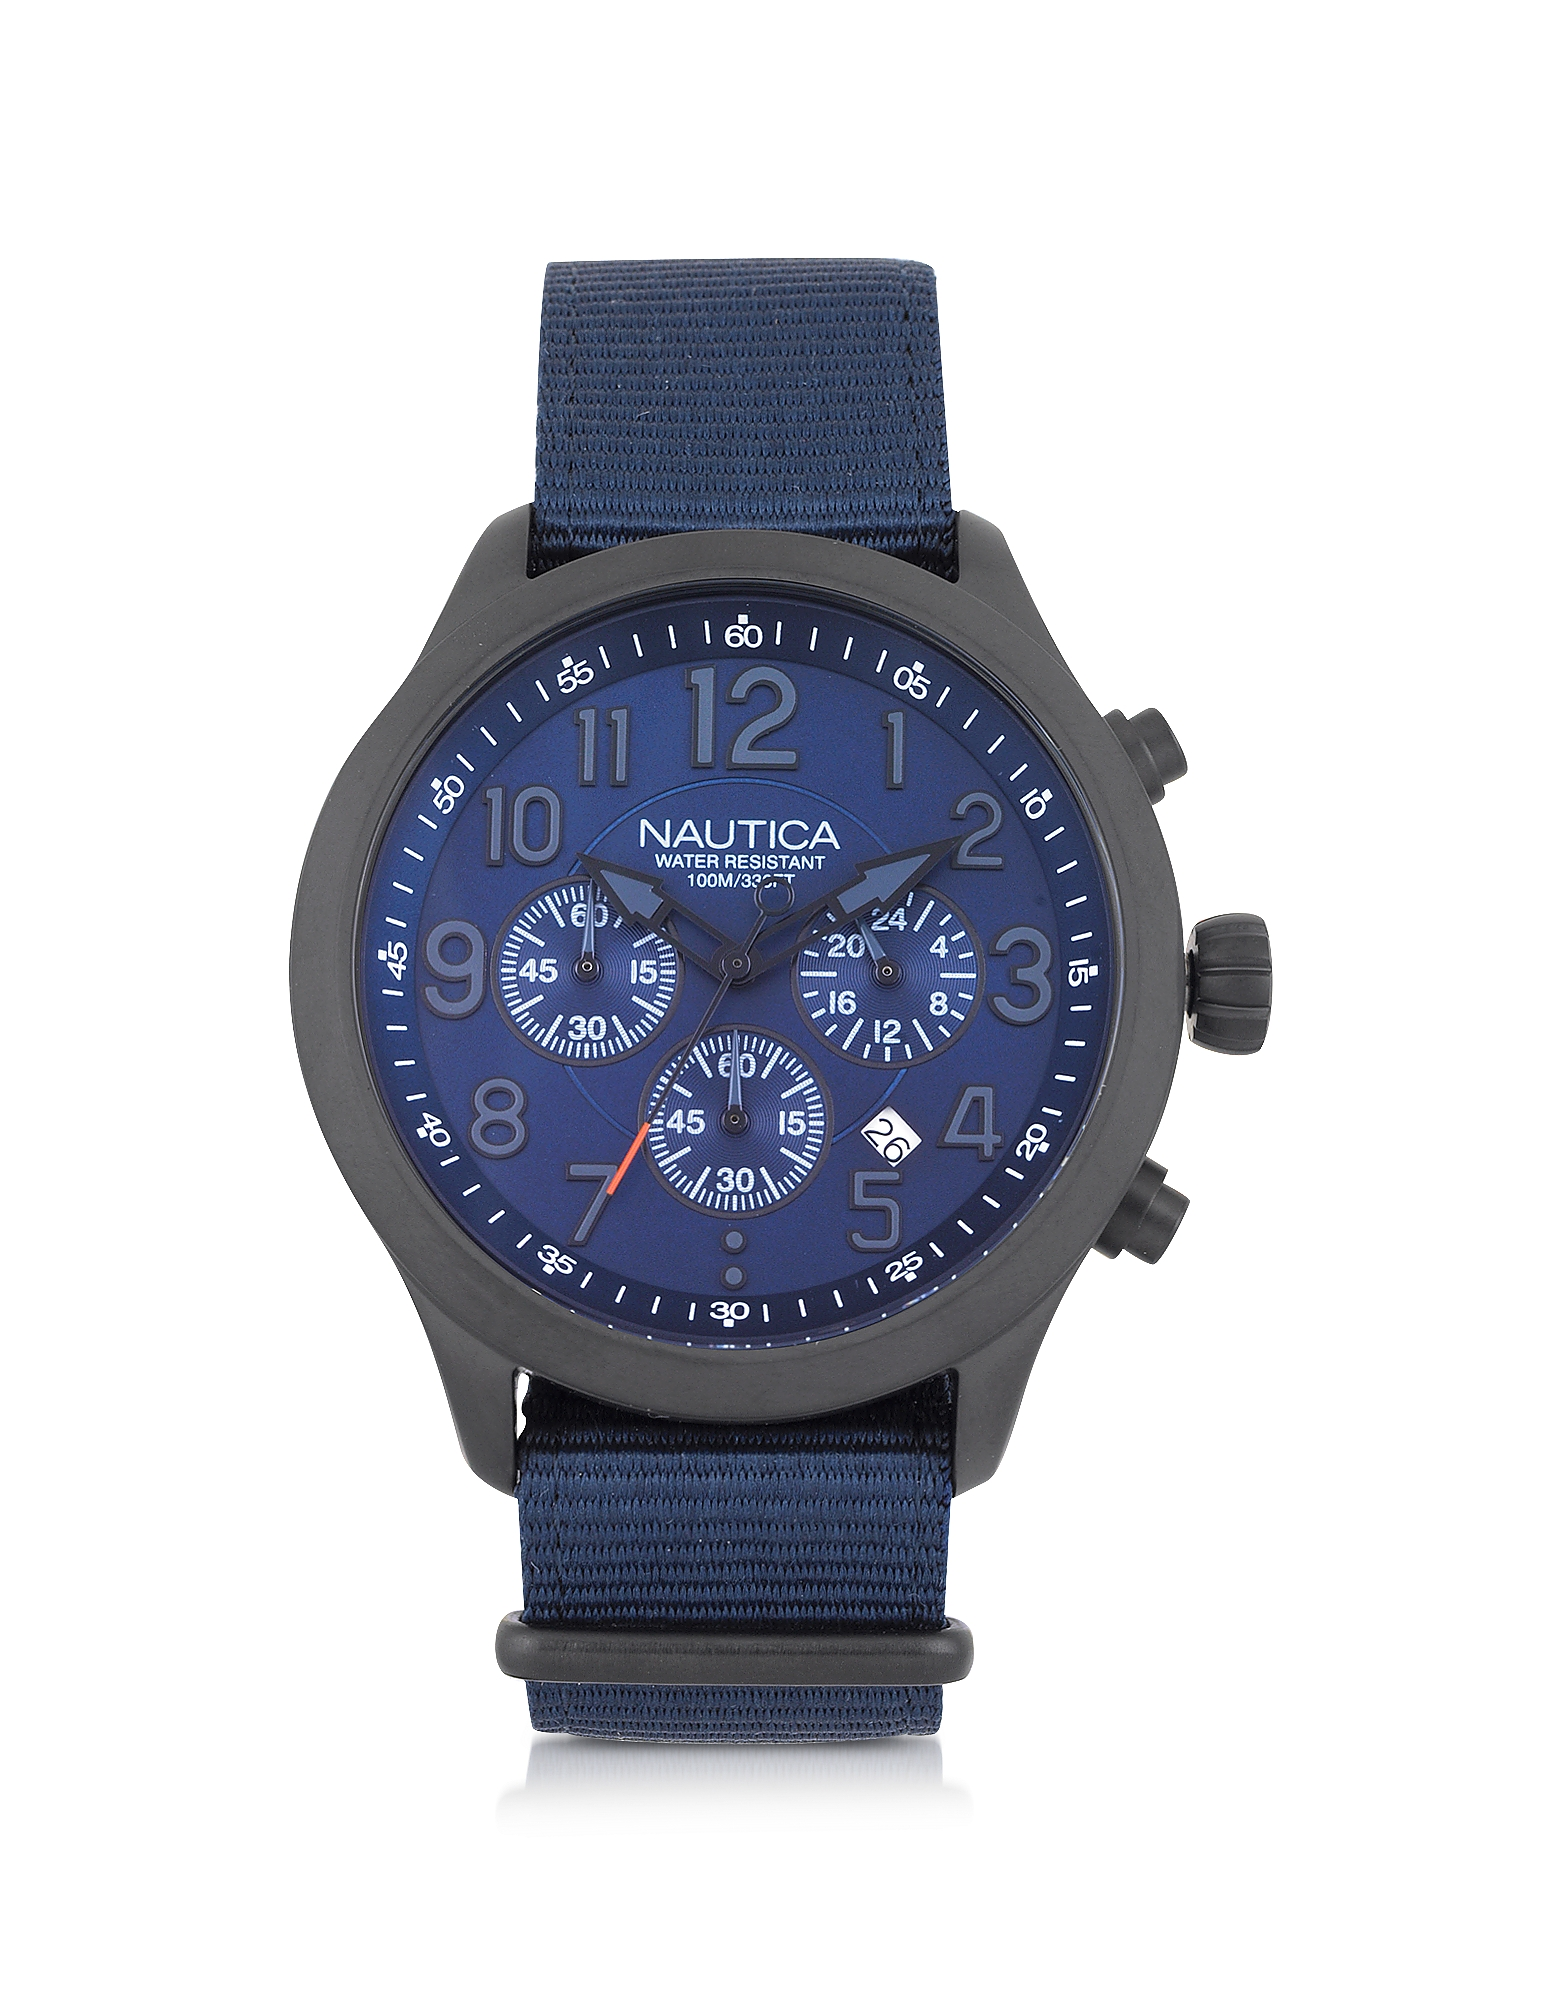 Nautica Men's Watches, Black Matte Stainless Steel Dial and Navy Blue Fabric Strap Men's Watch